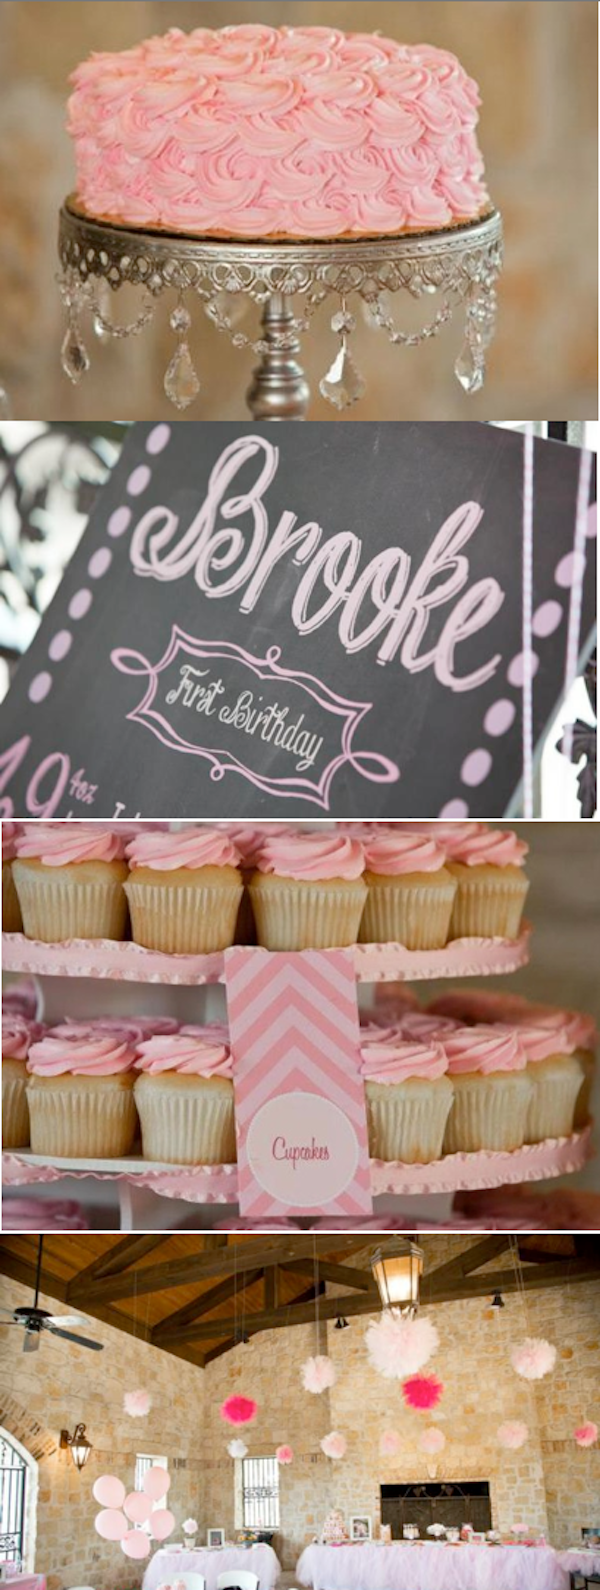 Sweet Vintage Pink Chevron 1st Birthday Party via Kara's Party Ideas KarasPartyIdeas.com #sweet #vintage #pink #chevron #1st #birthday #party #ideas